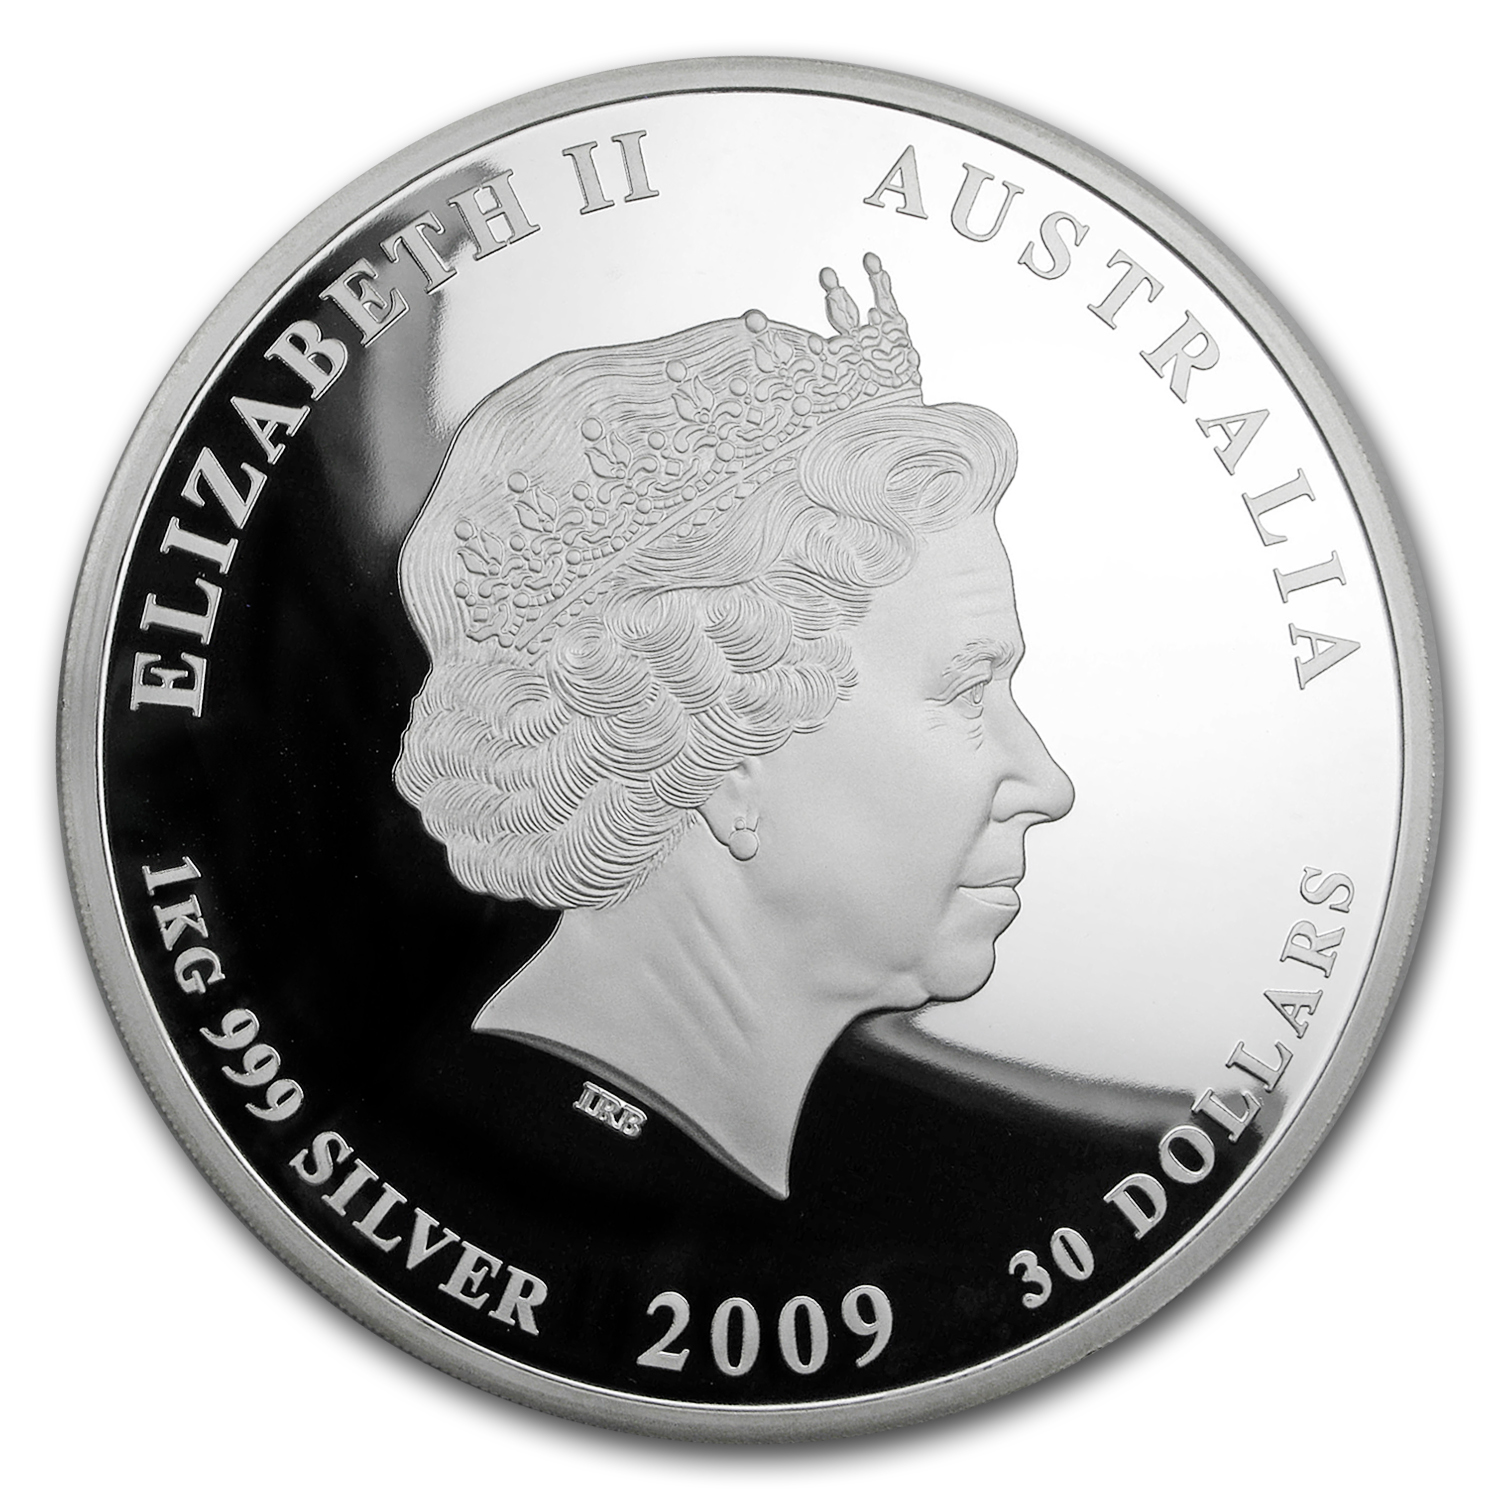 2009 1 Kilo Silver Australian Year of the Ox Proof (Series II)